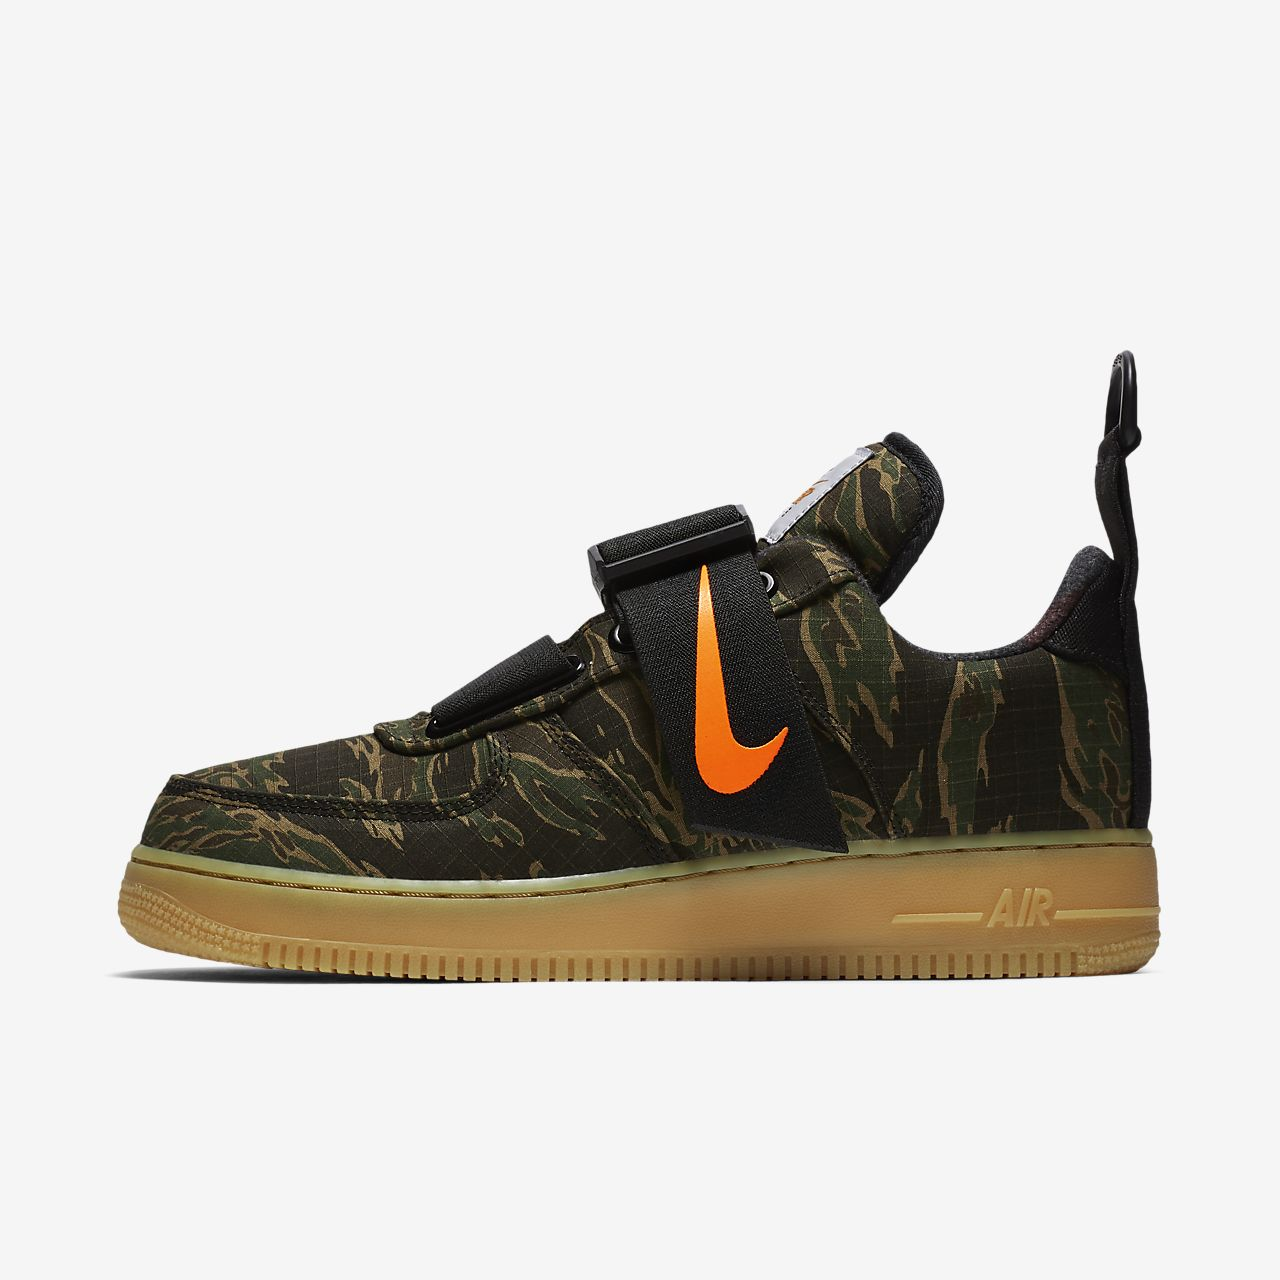 online store 7cf69 25d80 ... Nike Air Force 1 Utility Low Premium WIP Men s Shoe